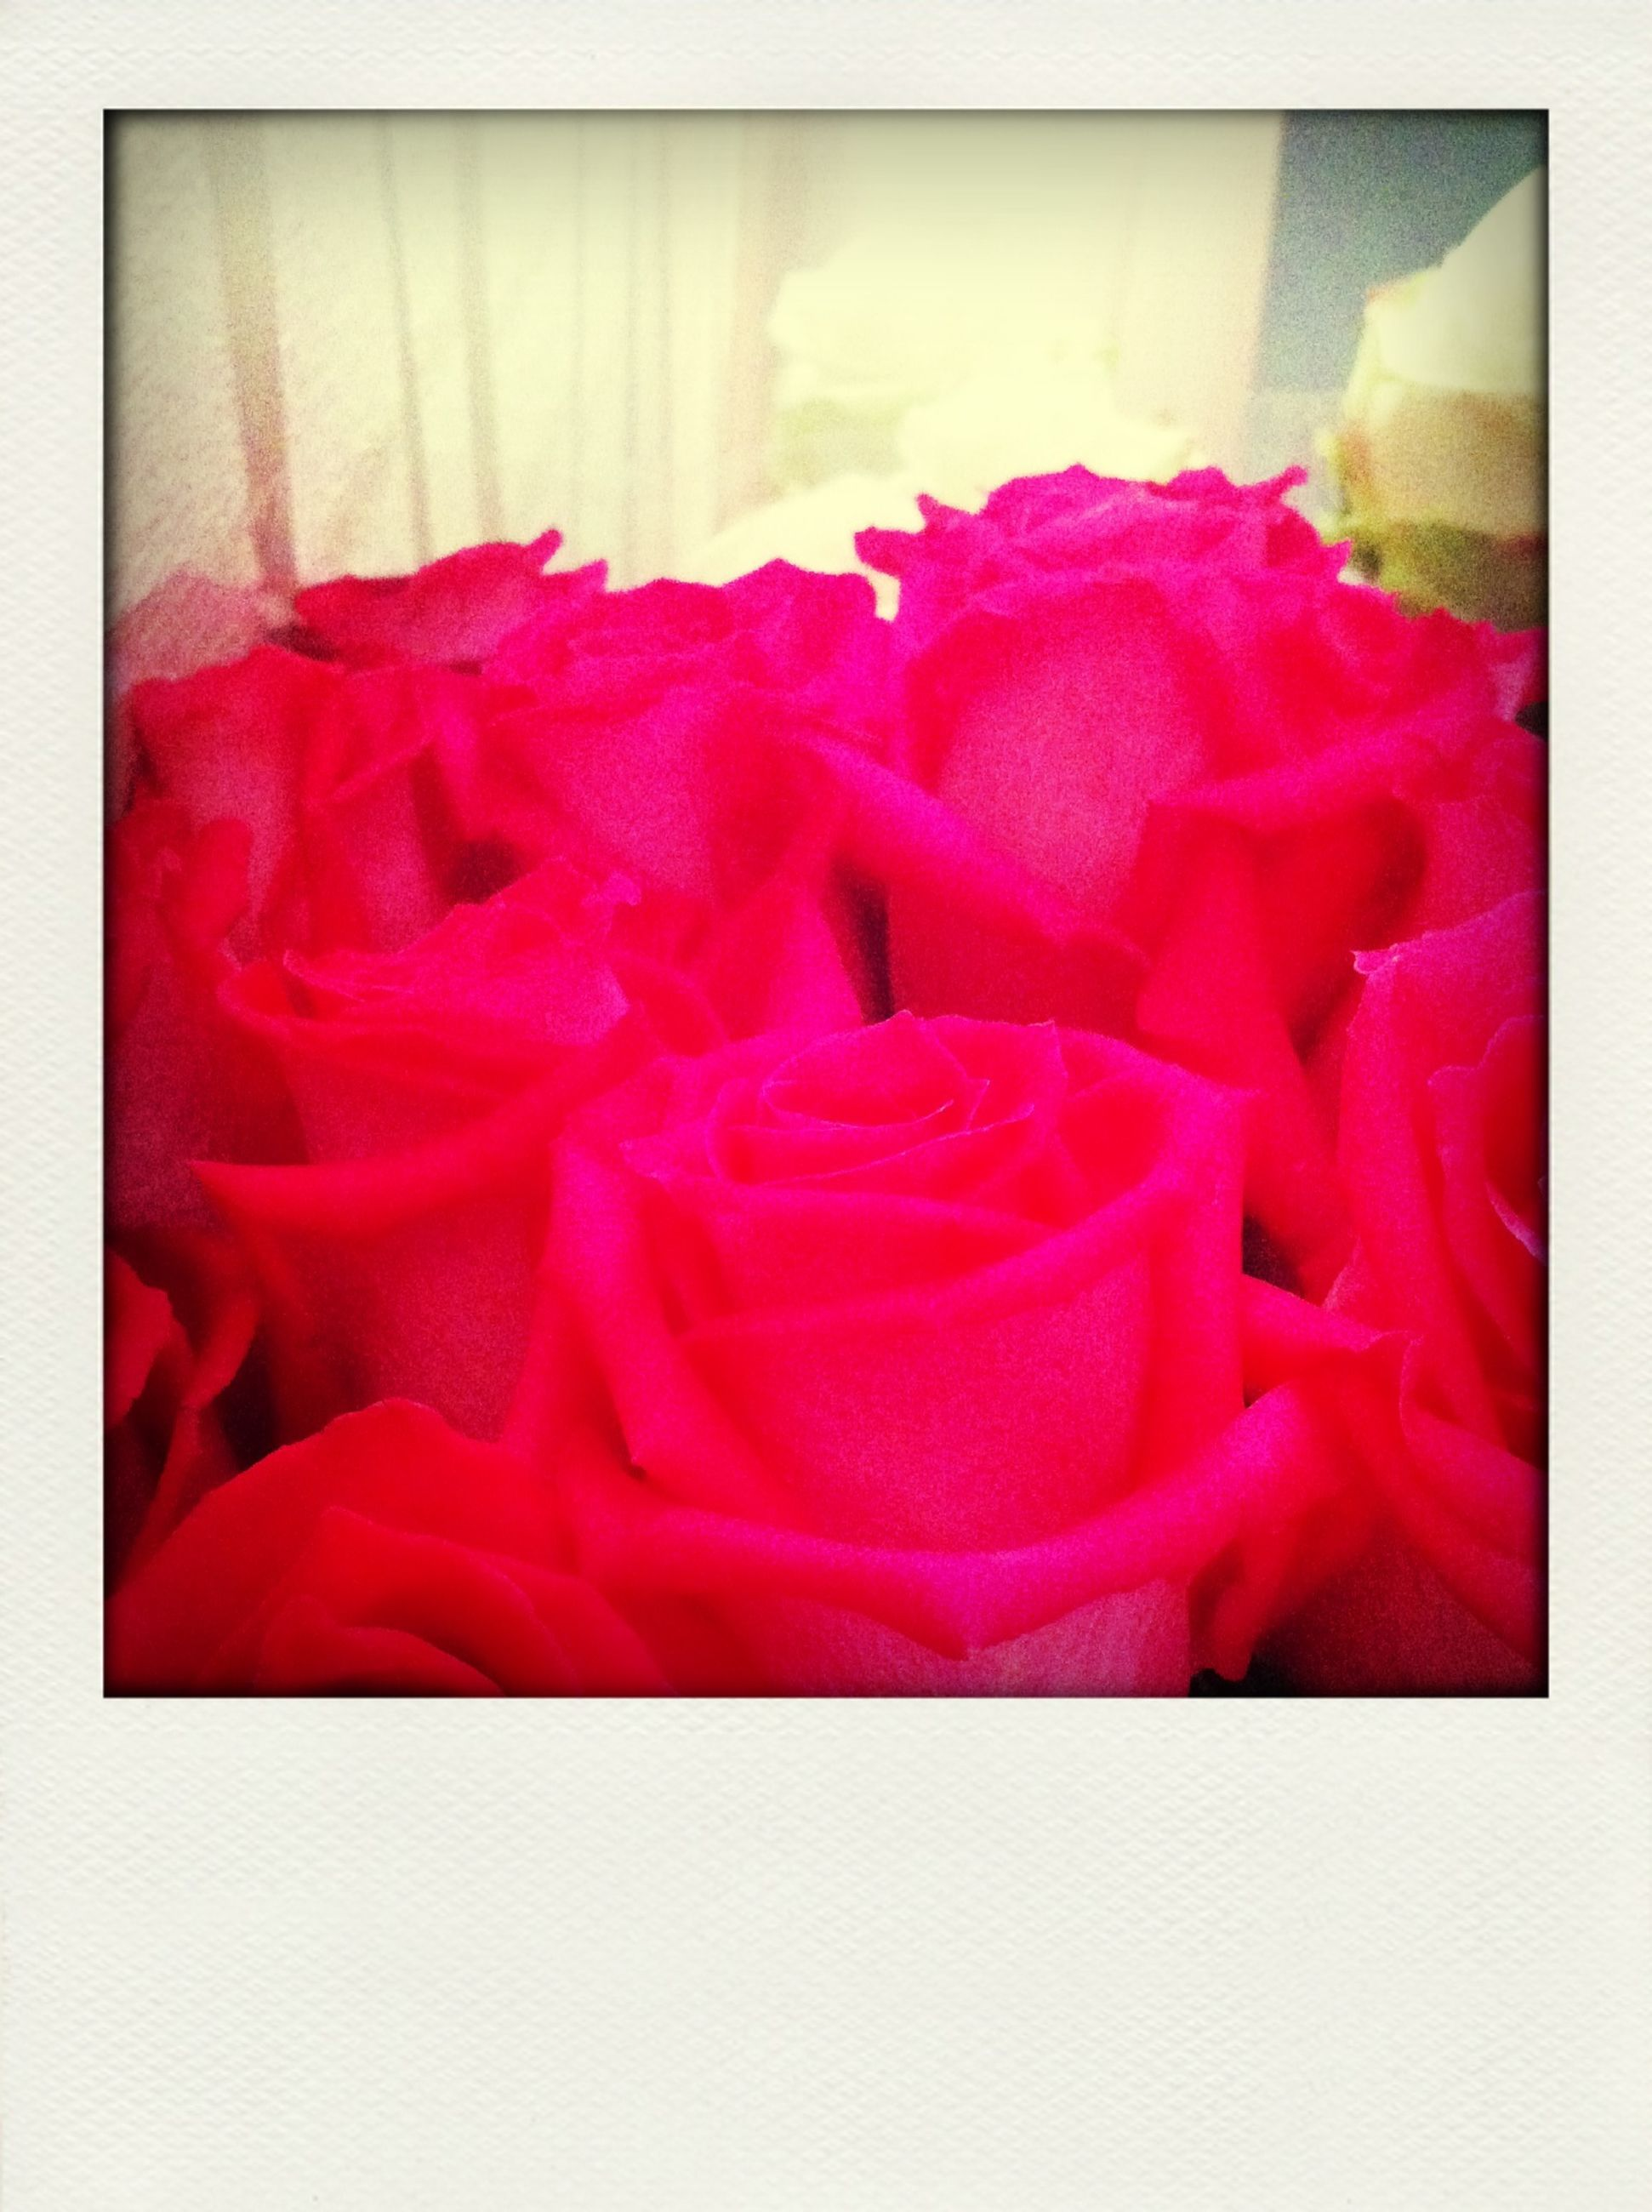 transfer print, indoors, auto post production filter, close-up, flower, rose - flower, red, pink color, still life, petal, freshness, rose, no people, flower head, fragility, table, pink, softness, high angle view, studio shot